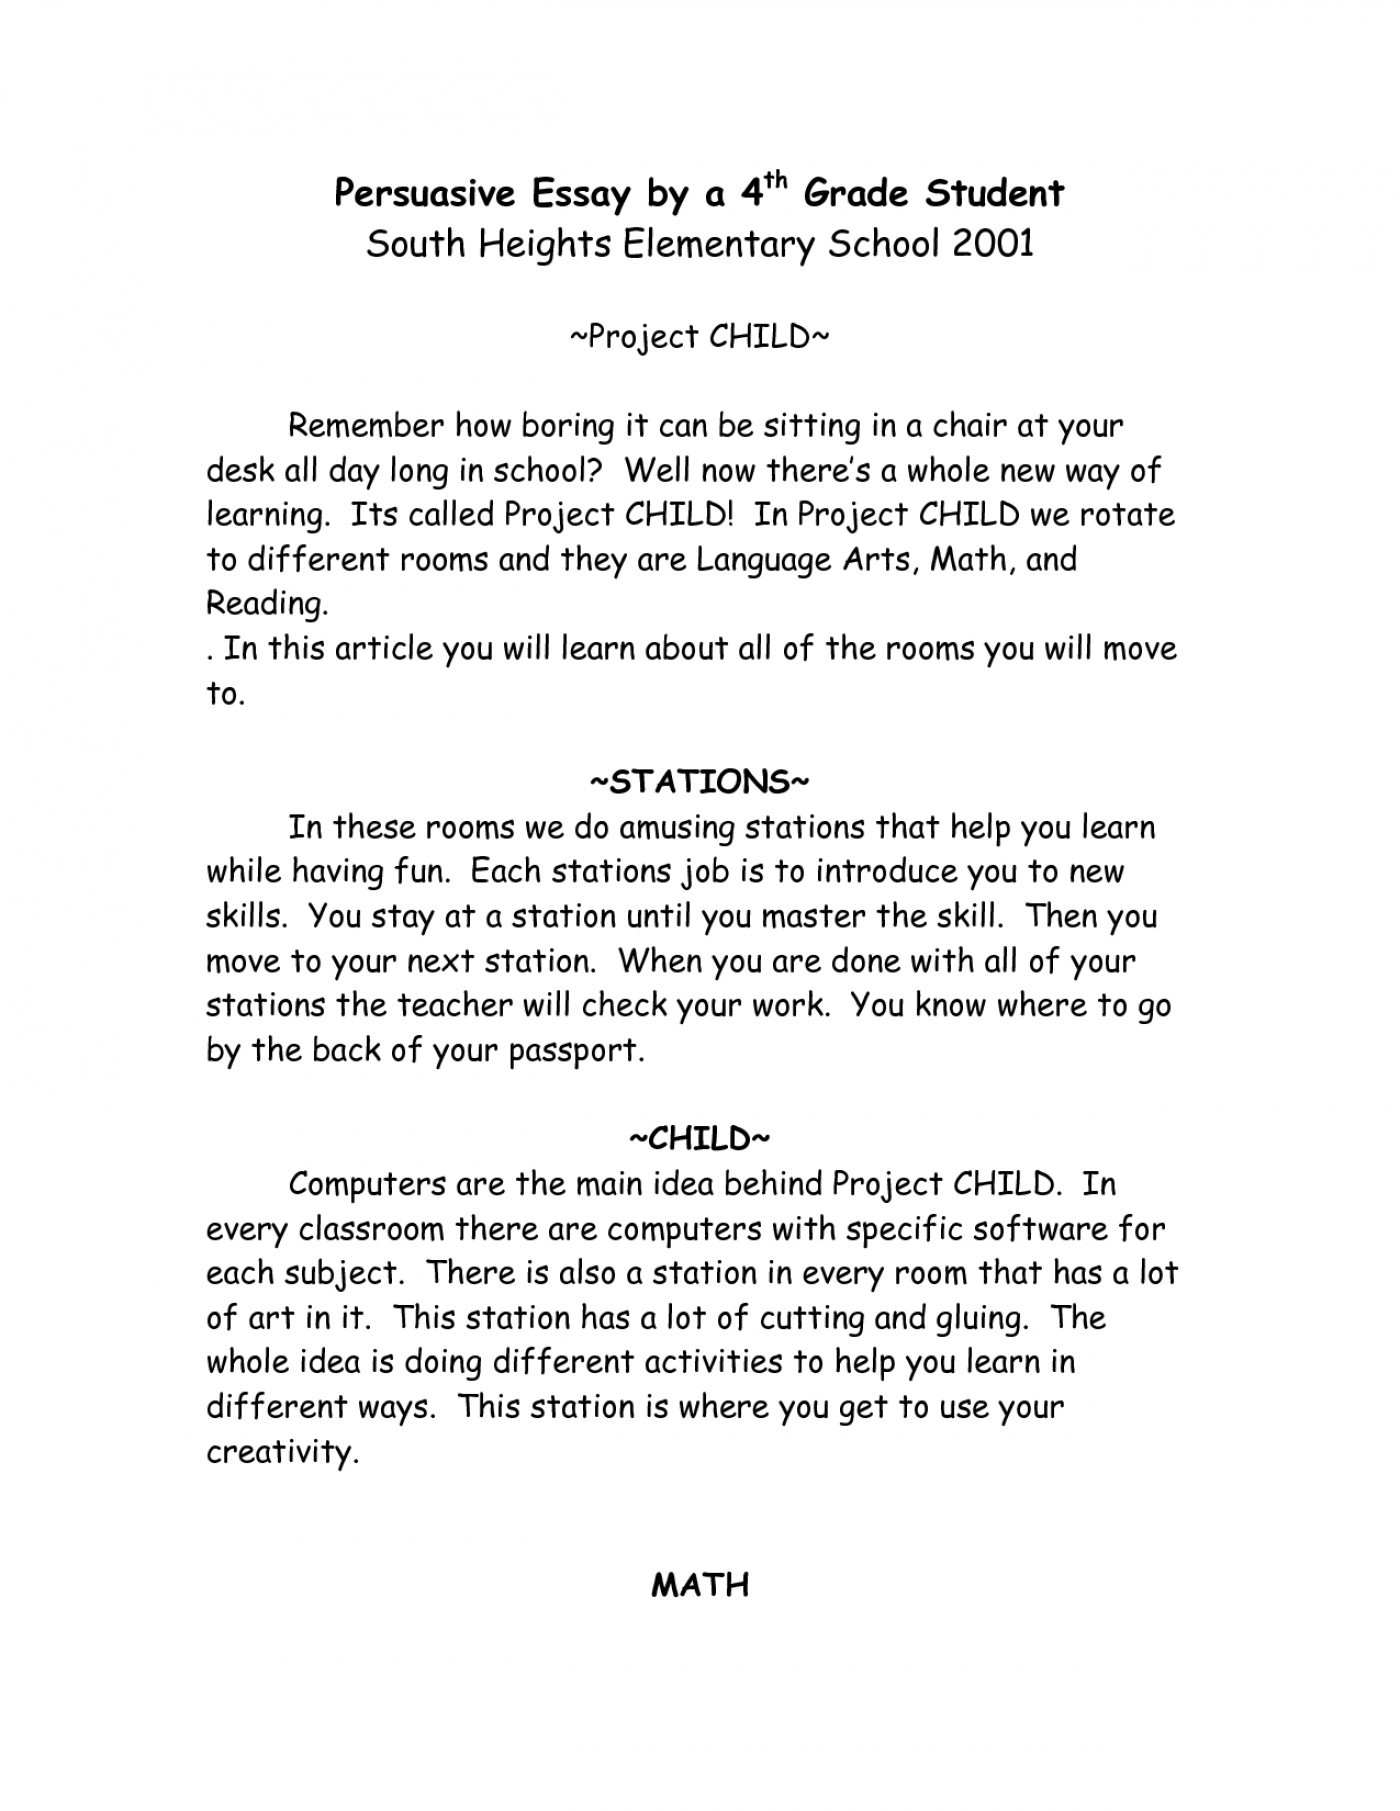 014 How To Start An Essay 2nmmxqusgx Amazing Analysis On A Book Ways With Question About Two Books 1400